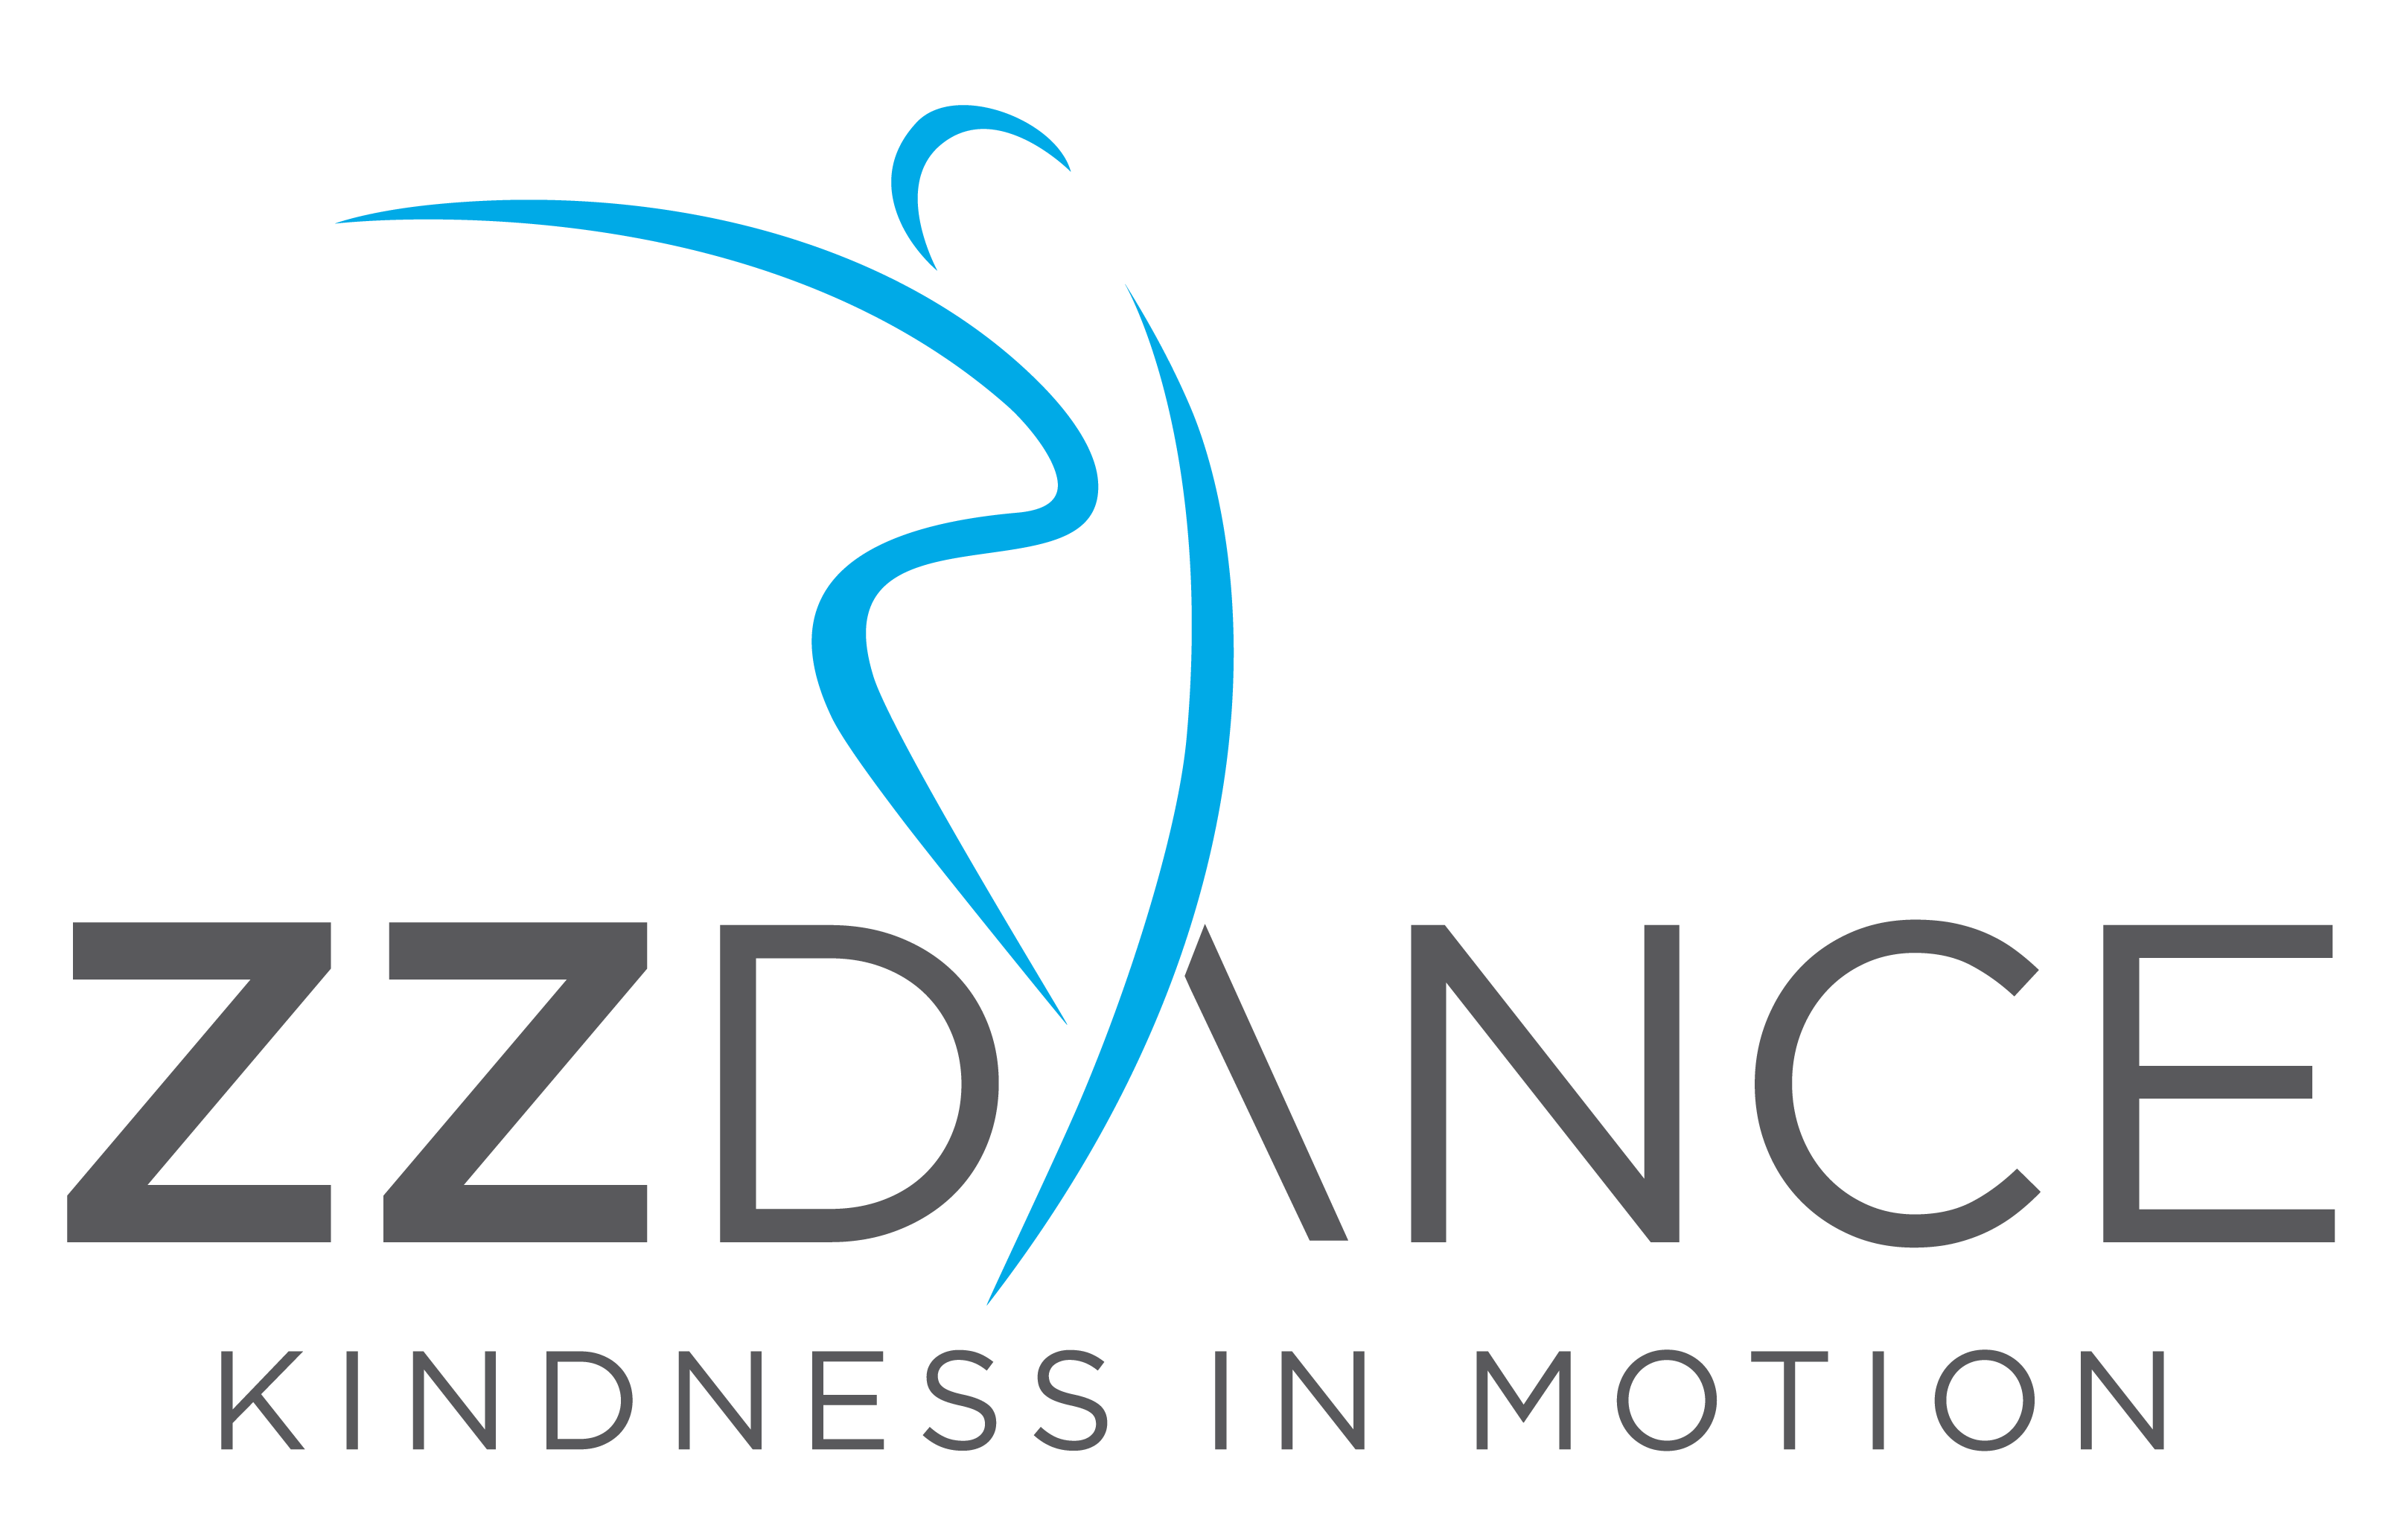 zz-dance-transparent-logo